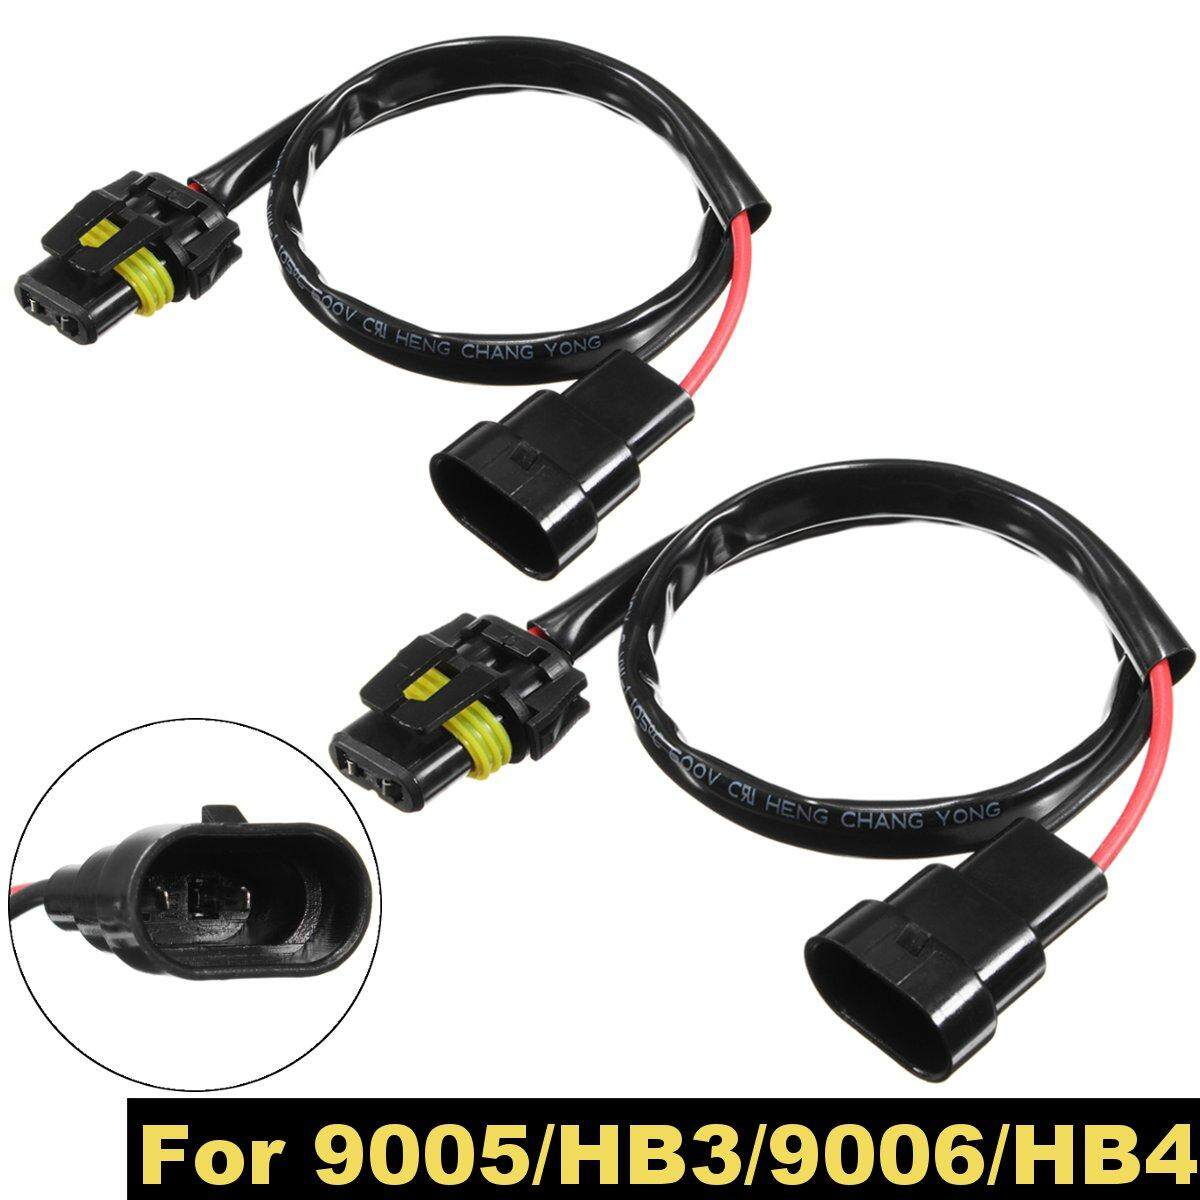 Automotive Wiring For Sale Harness Online Brands Wire Diagram Zongshen 200 2pcs 9005 Hb3 9006 Hb4 Car Headlight Xenon Power Cable Connector Extended Head Lamp